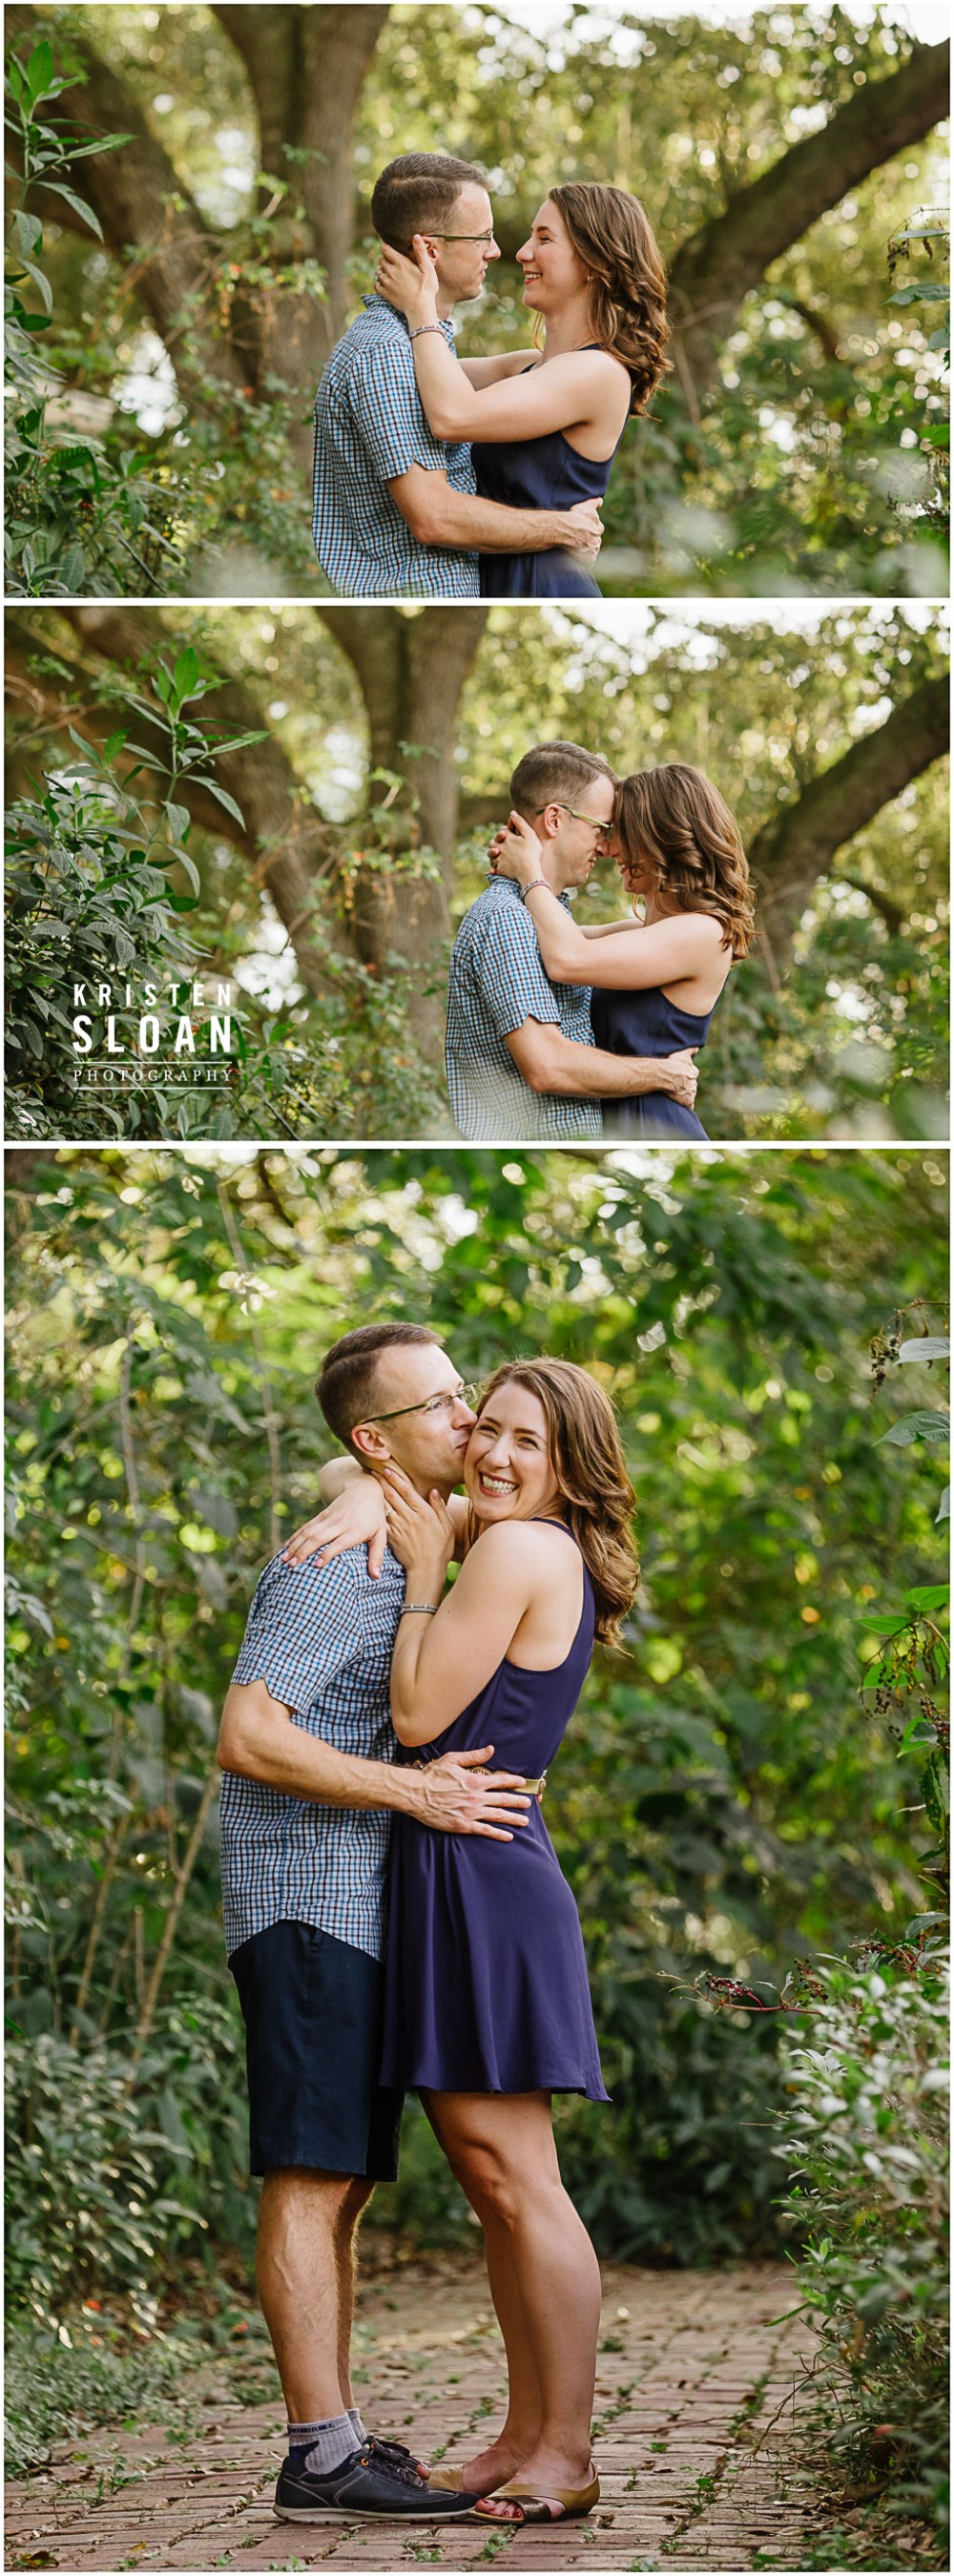 Red Tandem Bicycle Engagement Couples Photos St Pete FL